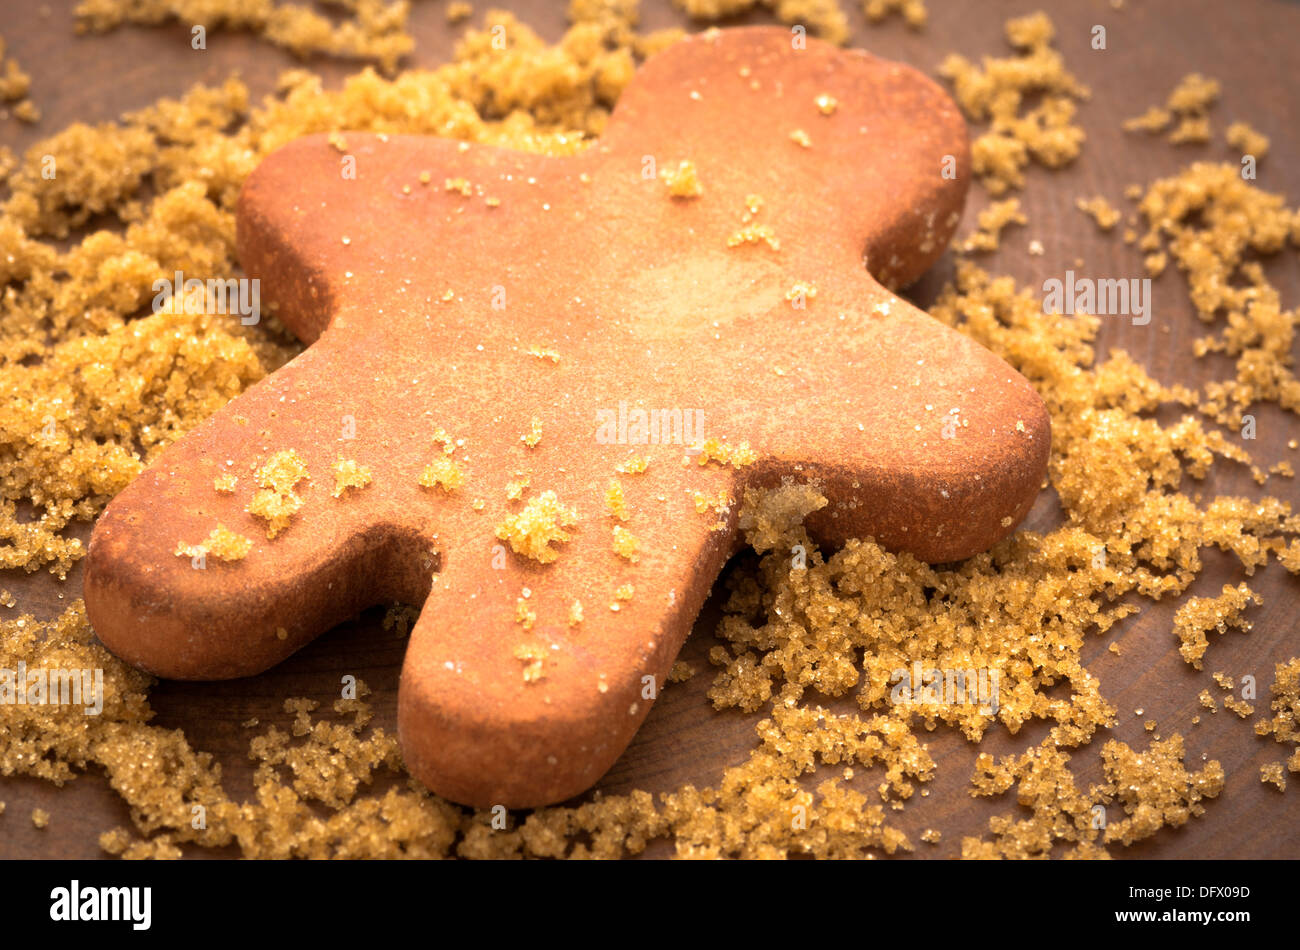 Brown sugar with clay man-shaped moisturizer on wooden plank - Stock Image